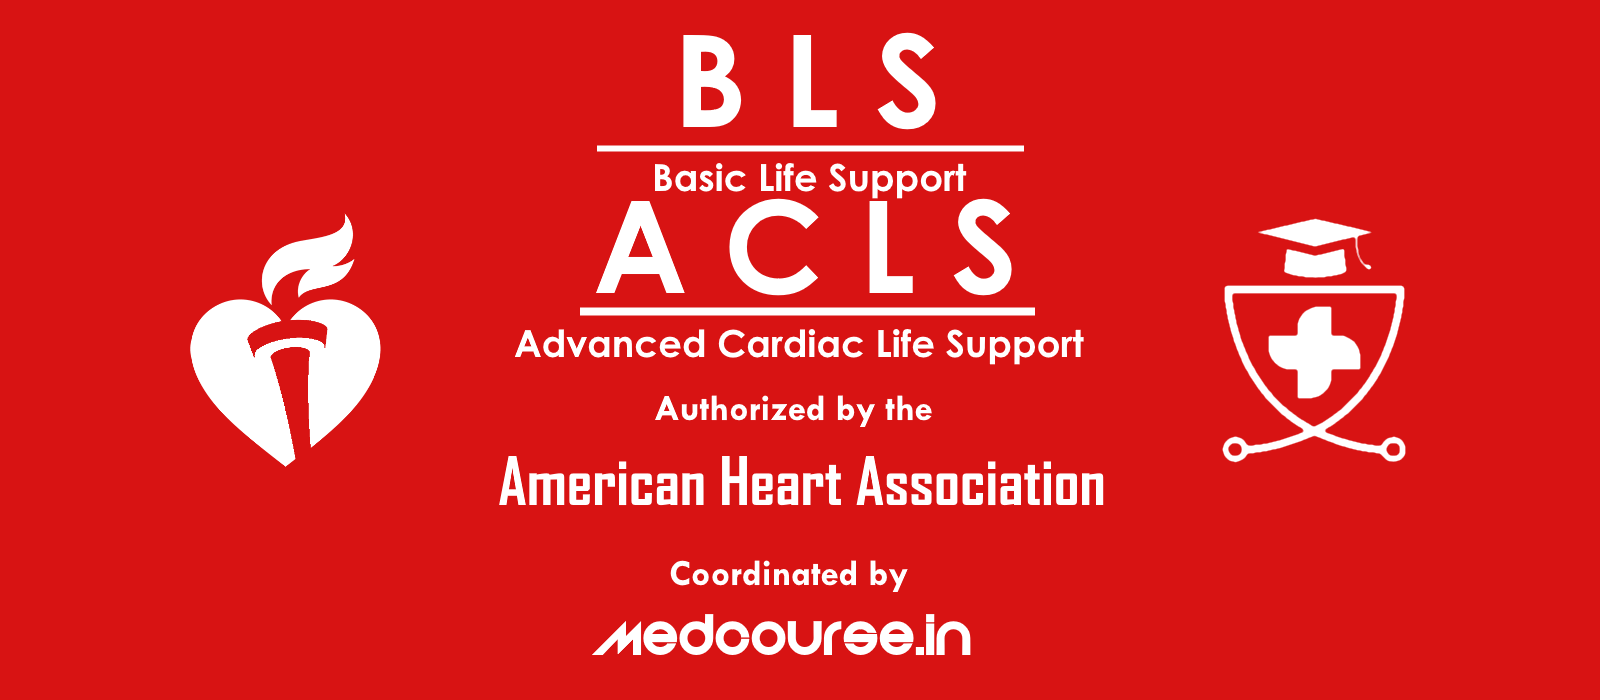 AHA BLS ACLS courses training